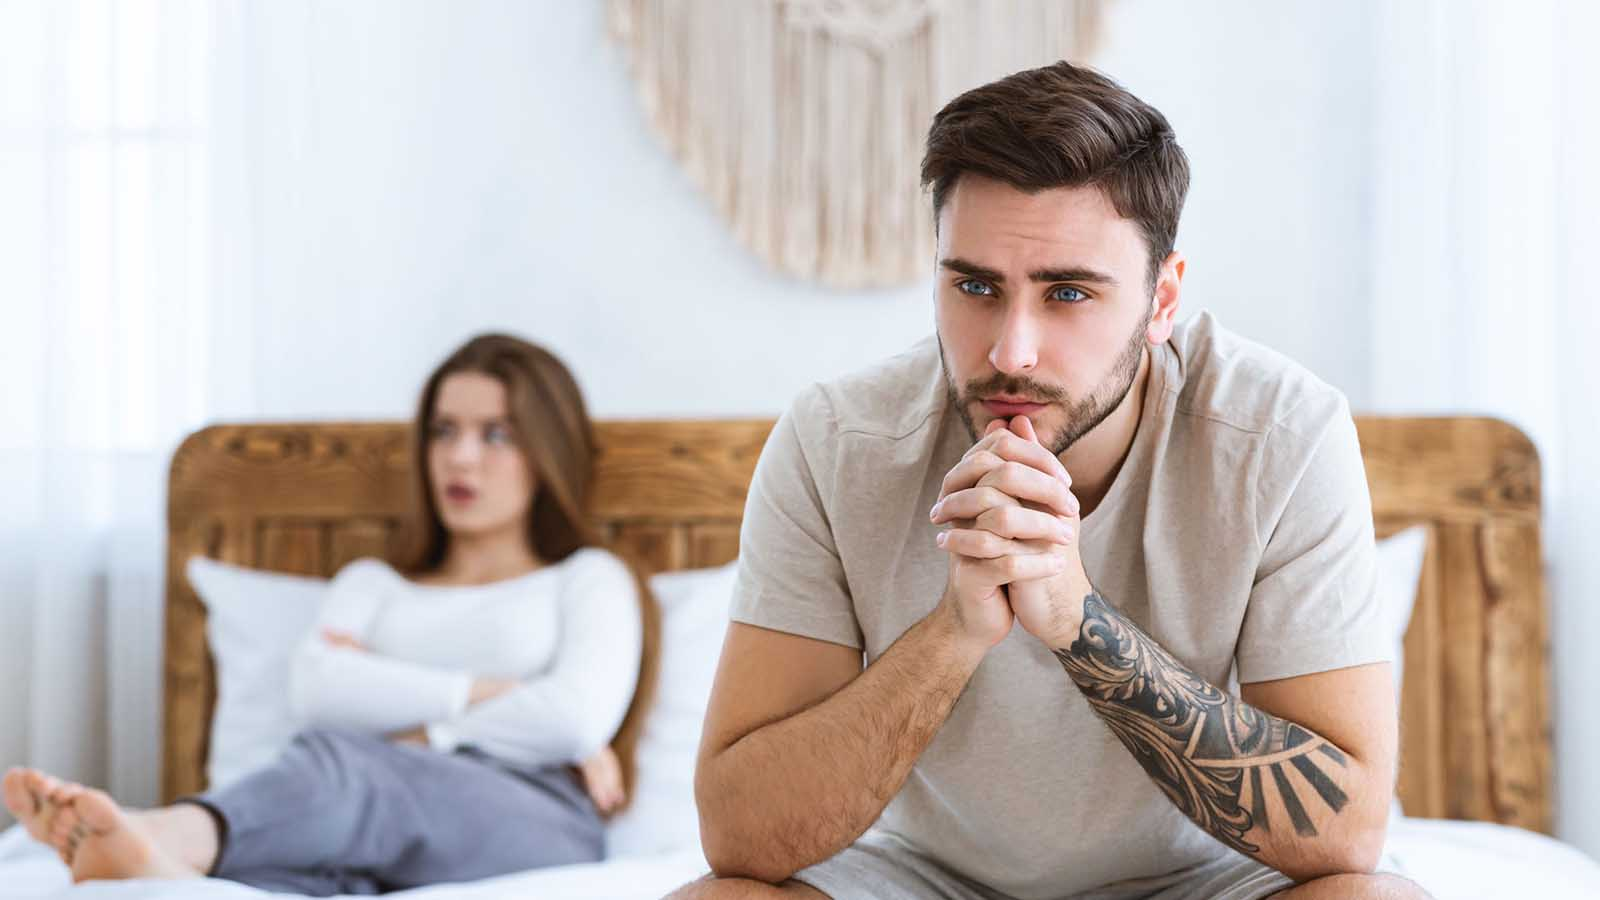 If you find yourself dealing with impotence in your 20s, you're not alone. Here's what you can do for treatment.